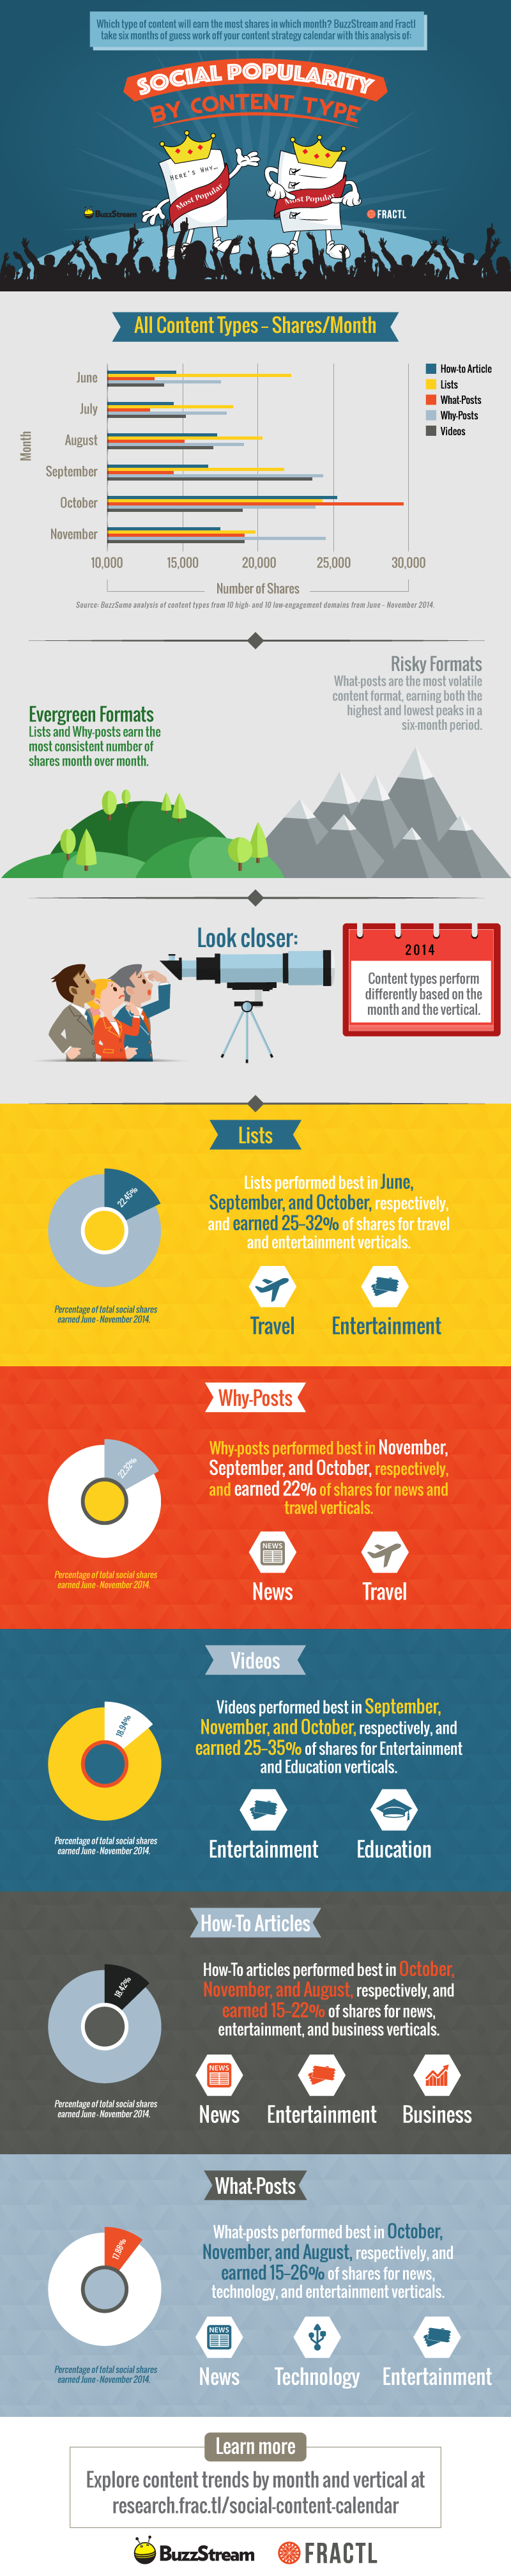 Most Socially-Shared Content By Type [INFOGRAPHIC]